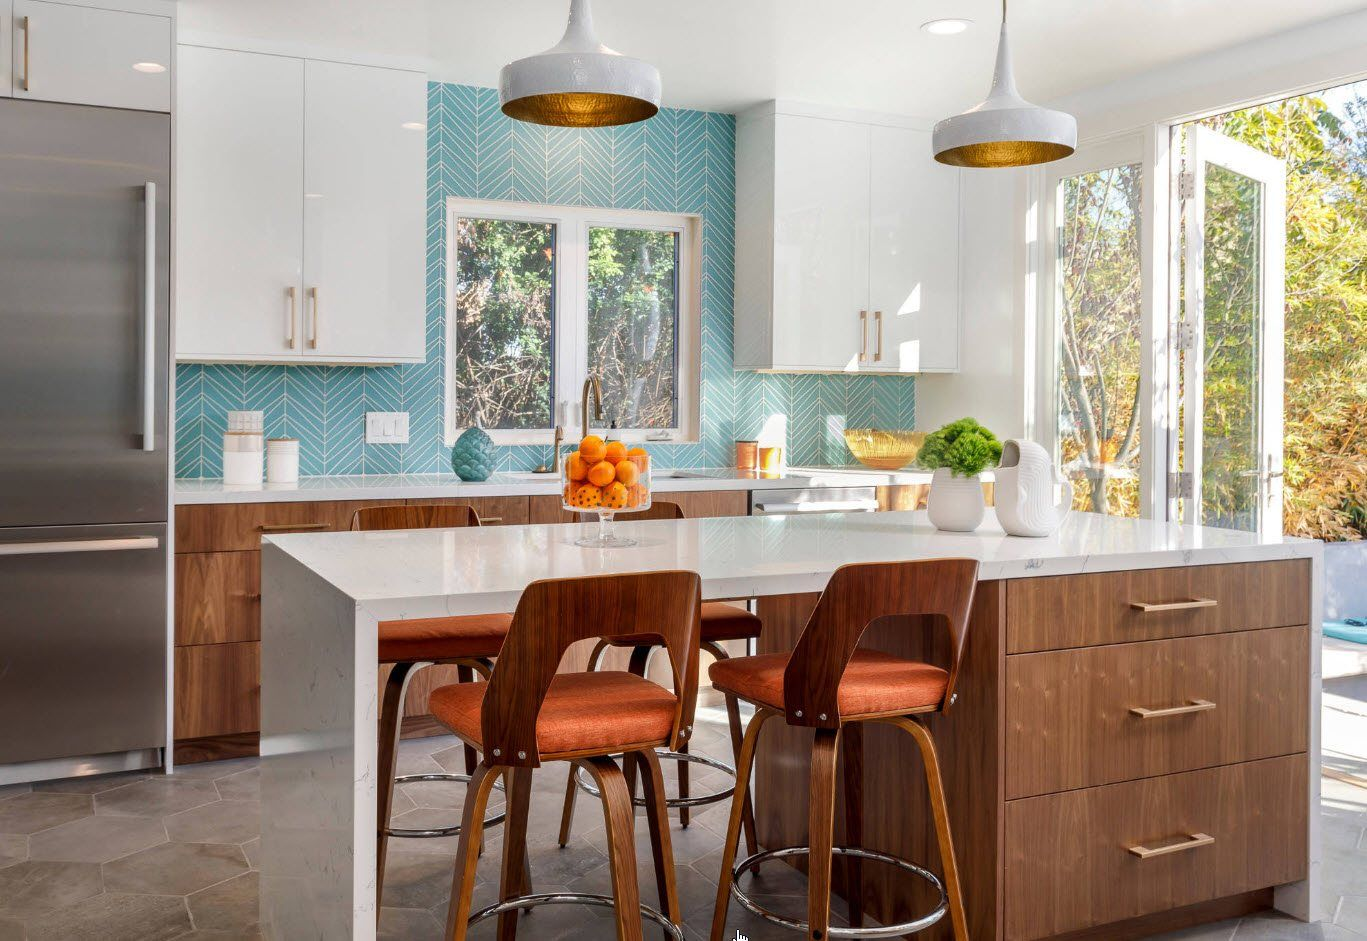 Turquoise kitchen wall decoration with white cabinets